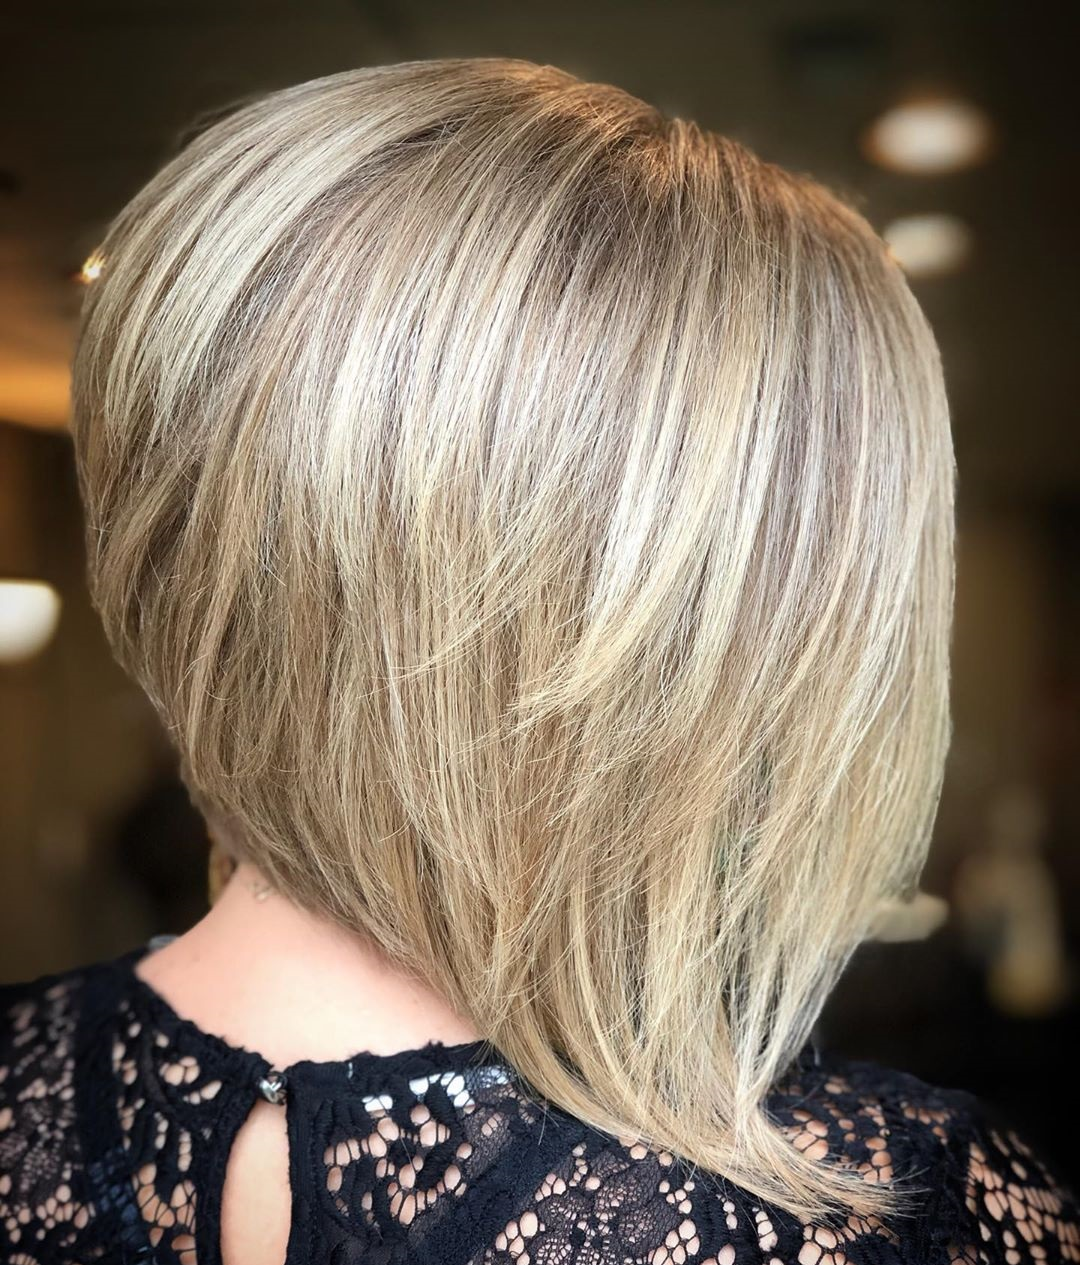 Inverted Bob with Shorter and Longer Layers